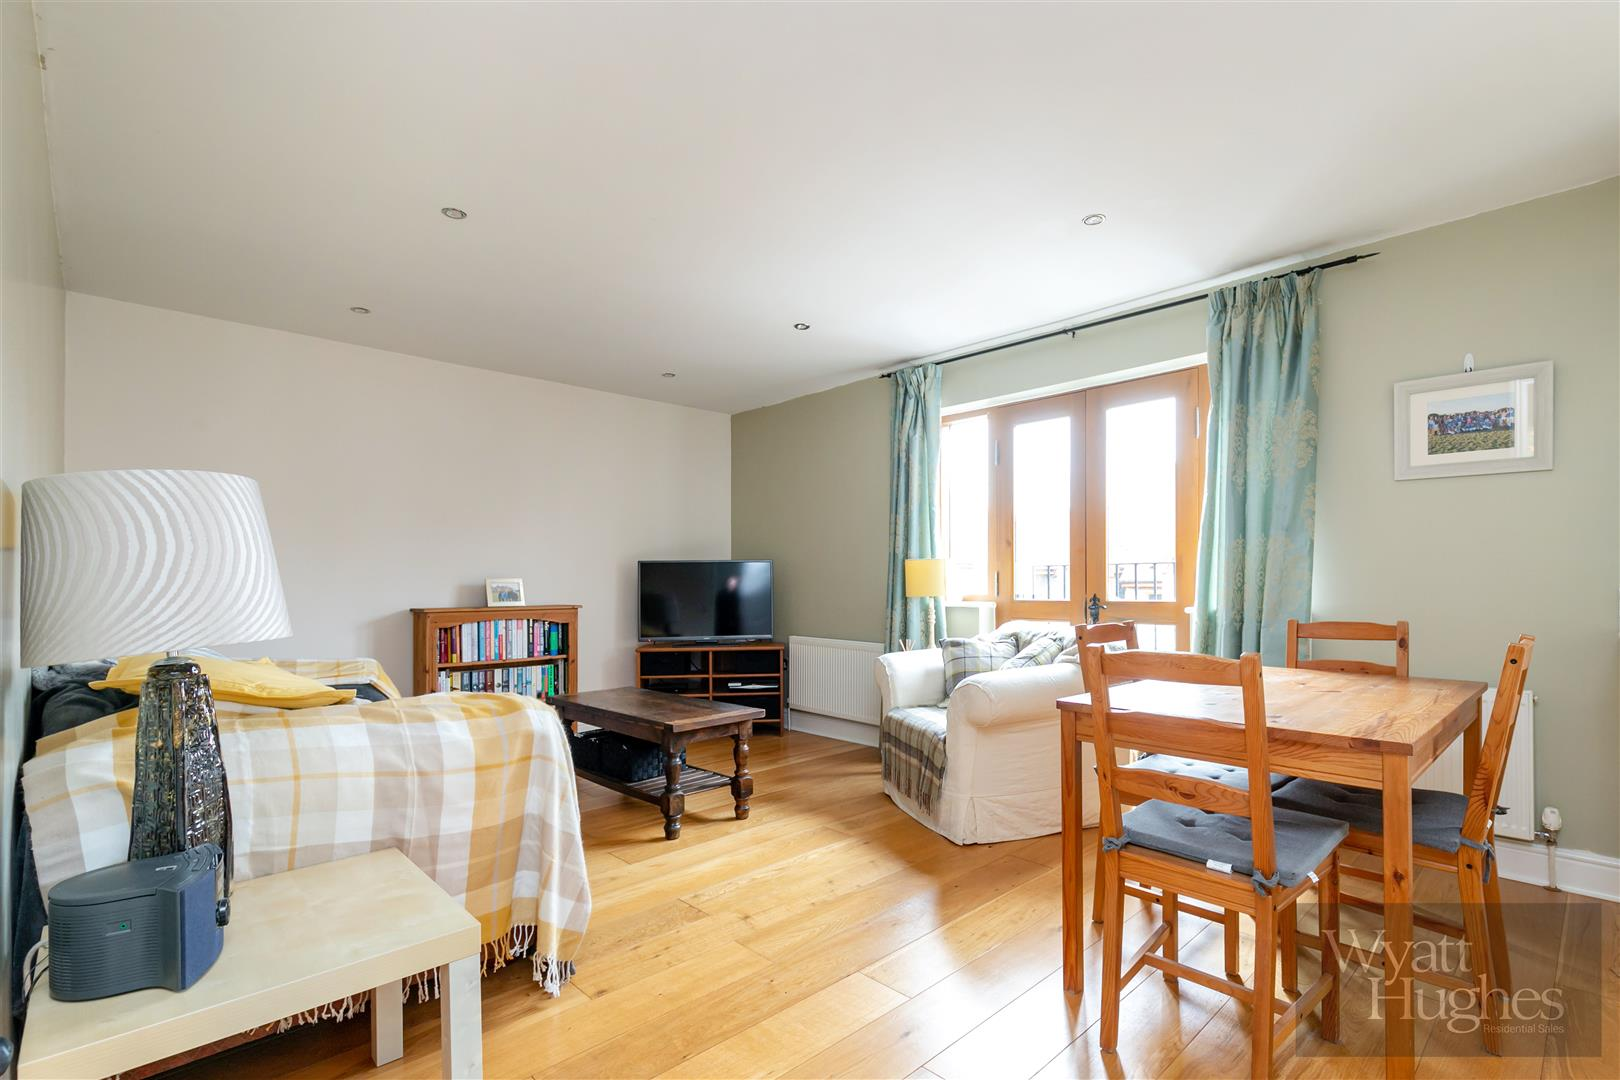 1 bed flat for sale in Colemans Way, Hurst Green - Property Image 1